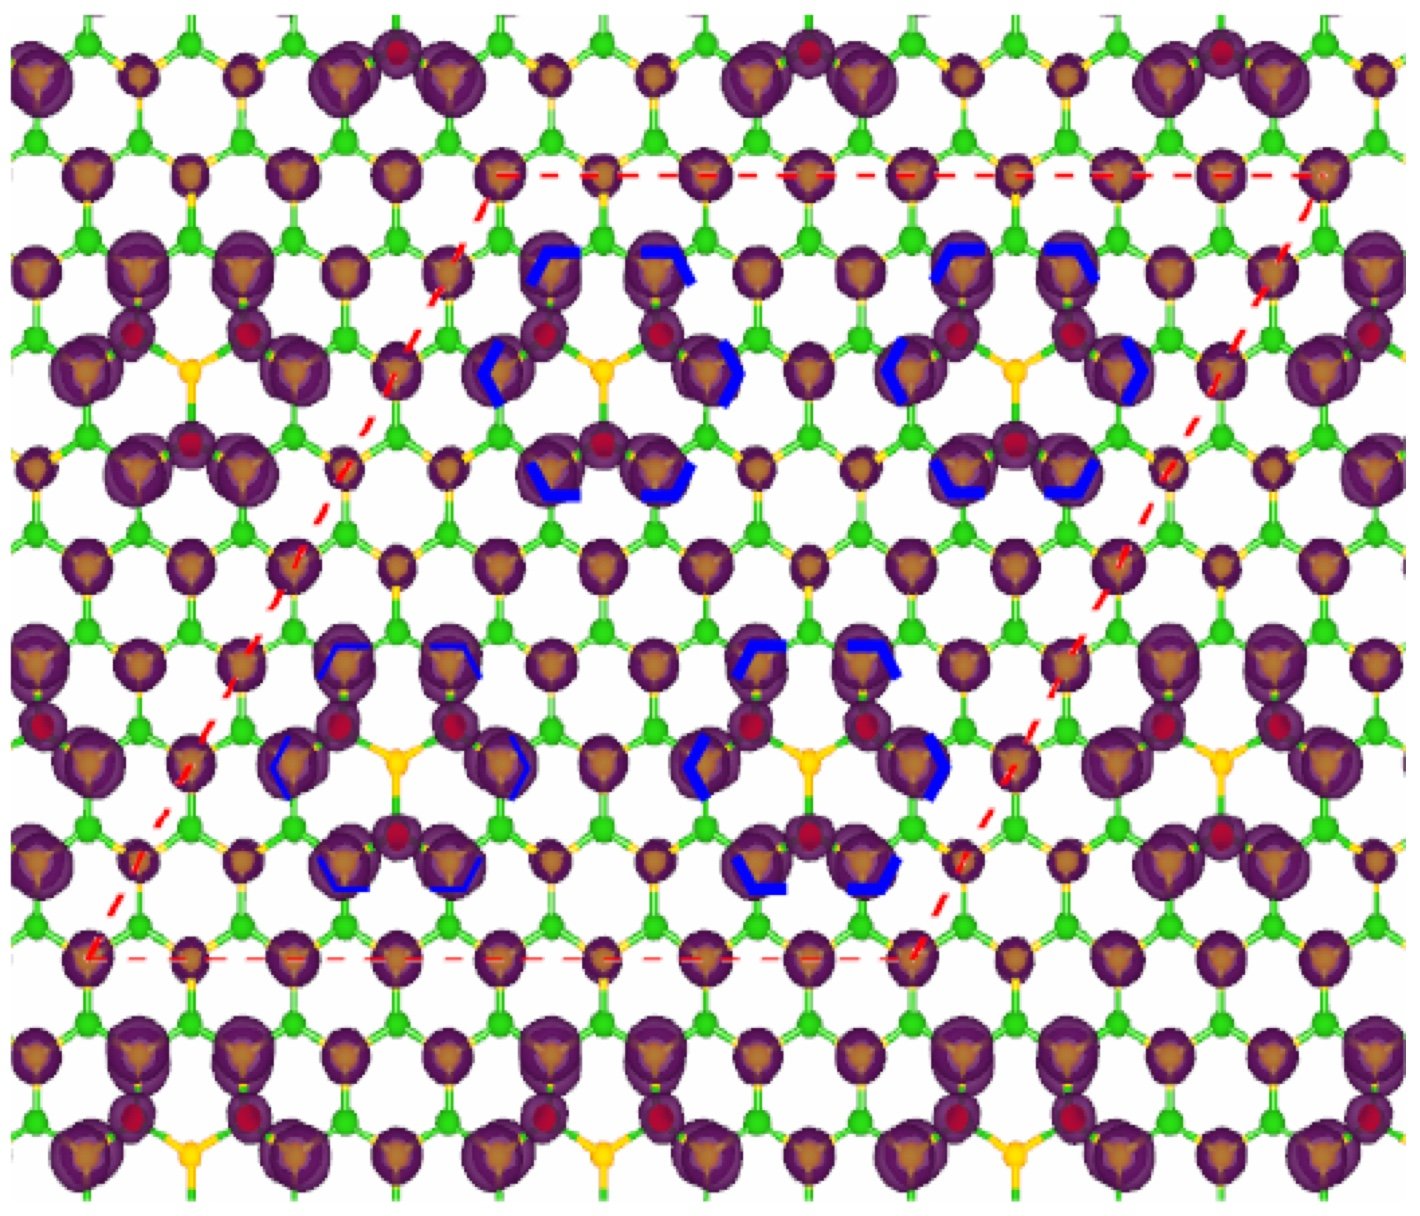 Fluorine grants white graphene new powers: Researchers turn common insulator into a magnetic semiconductor